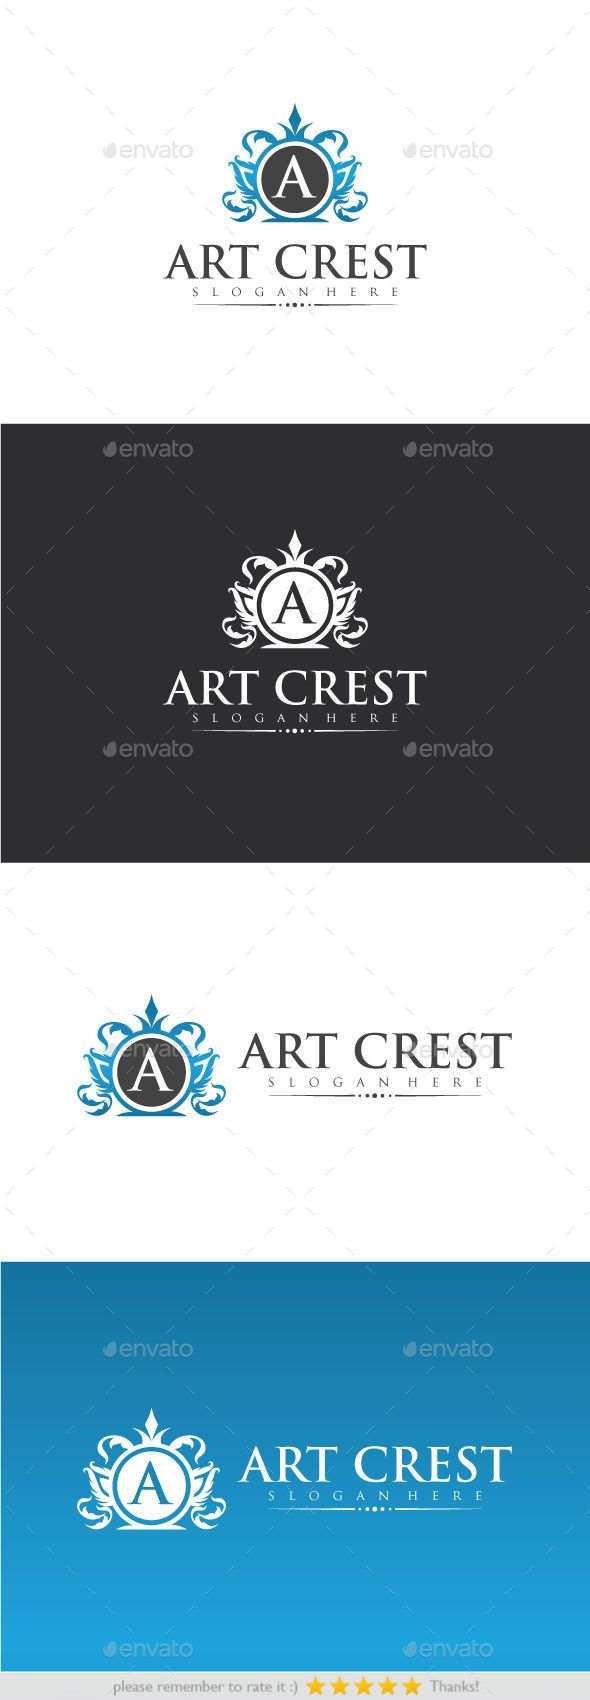 Art Crest — Transparent PNG #stars #flowers • Available here → https://graphicriver.net/item/art-crest/9323829?ref=pxcr